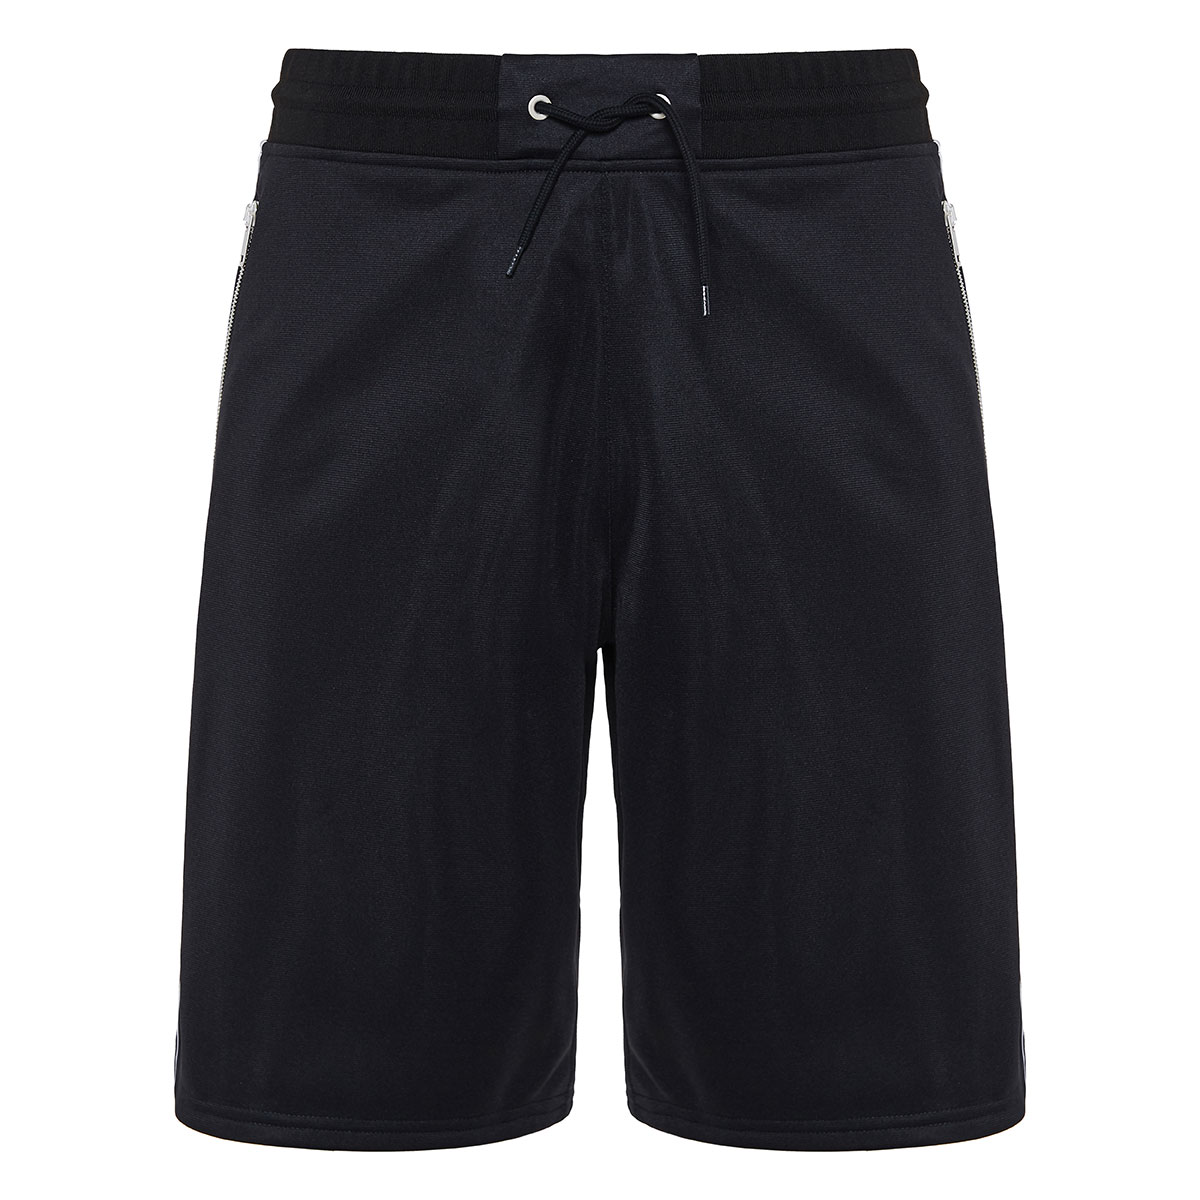 Track shorts with logo bands